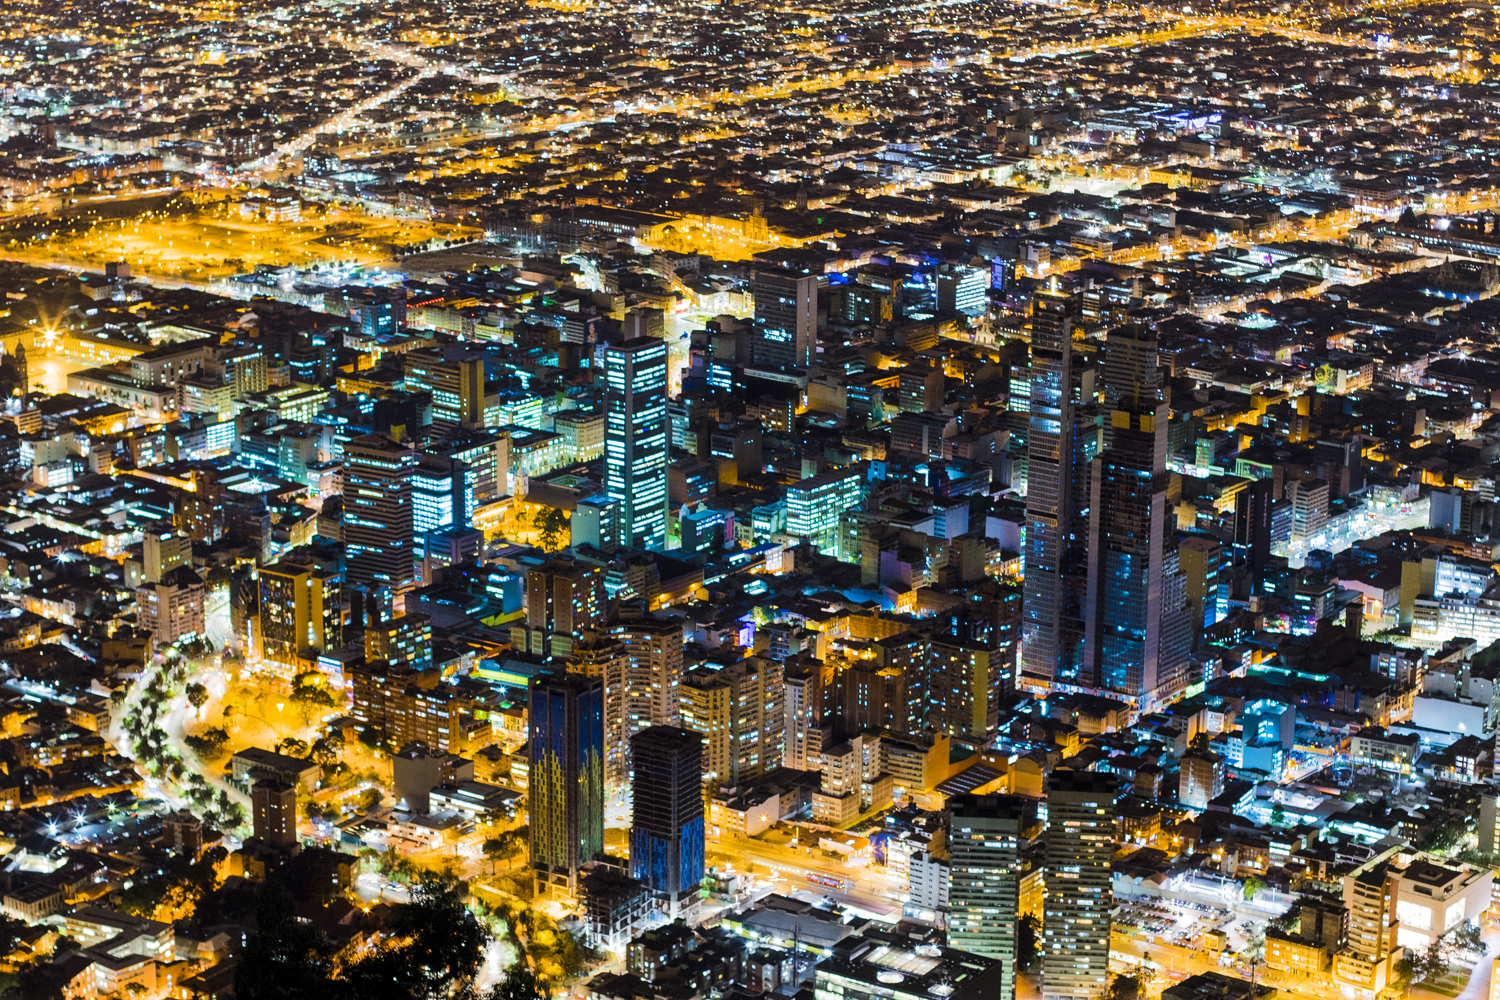 bogota colombia city landscape night austin paz